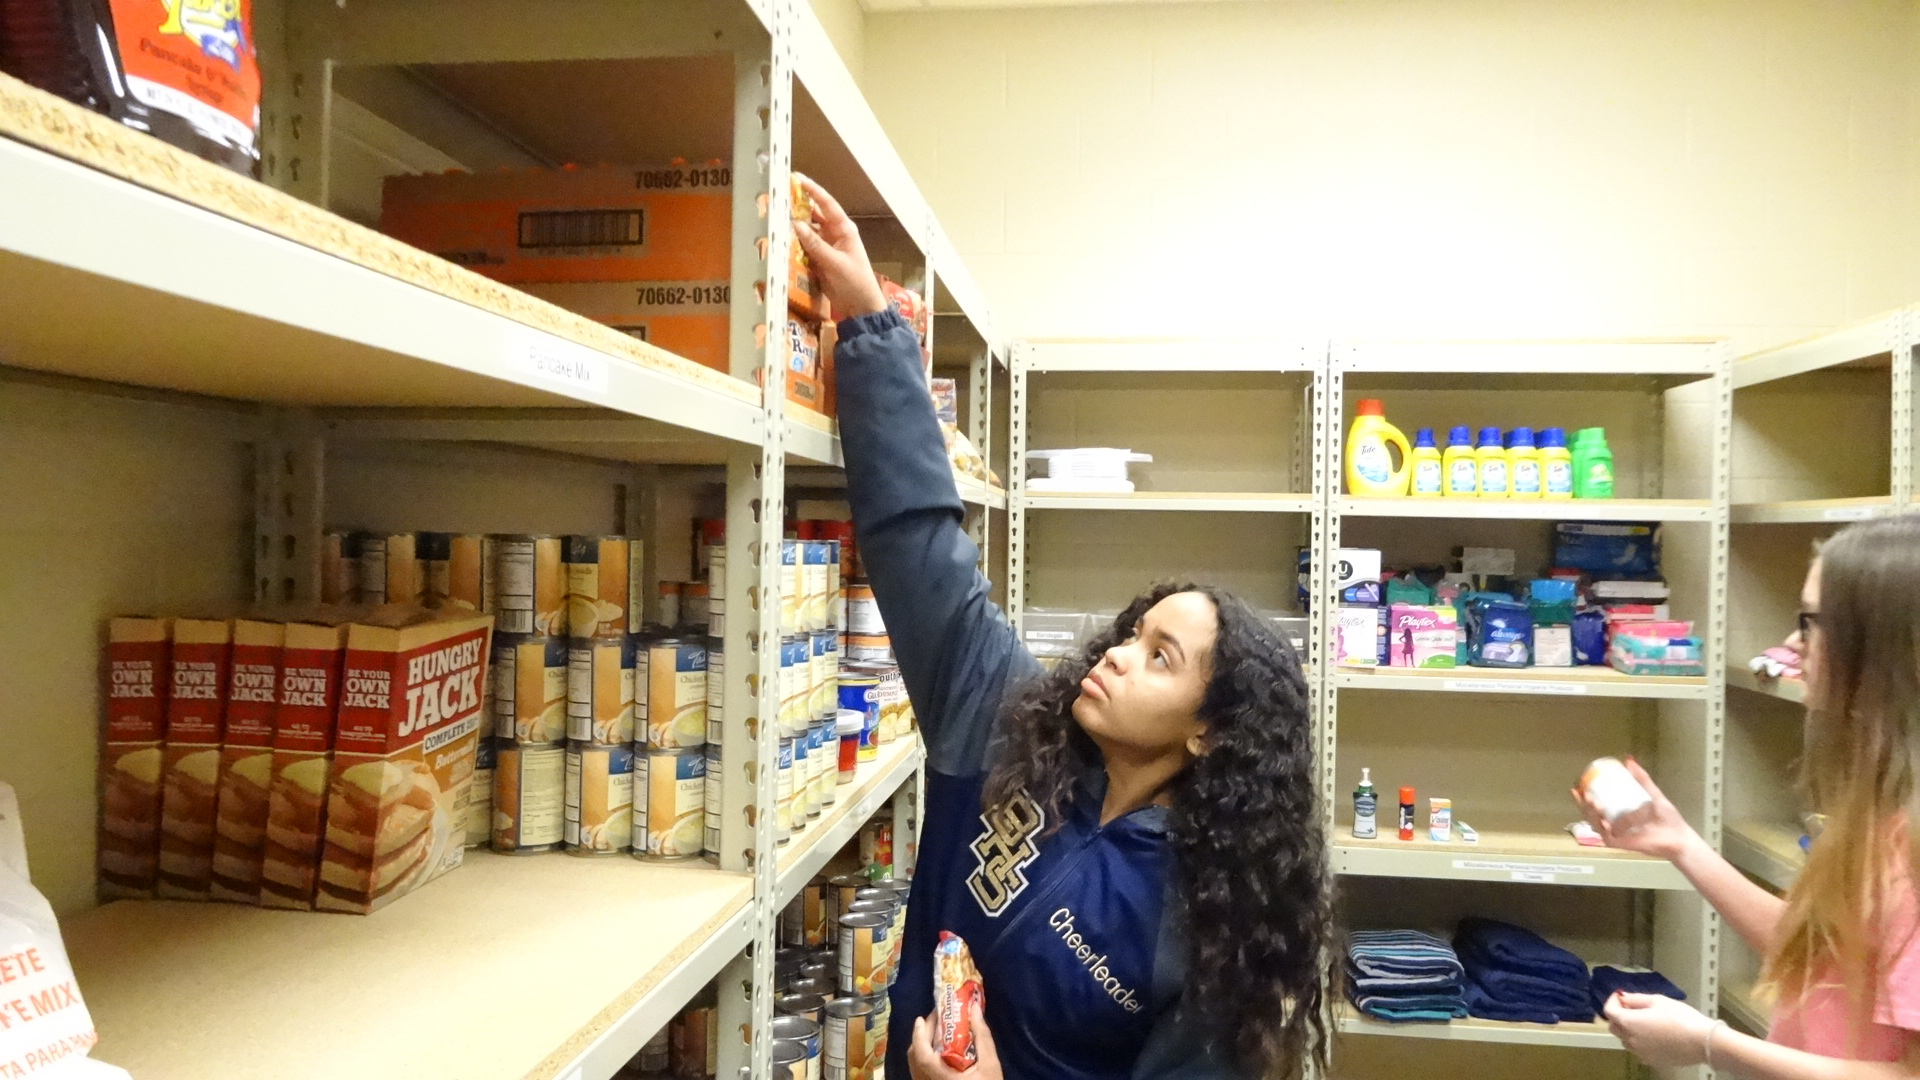 Seantya Brown stocks the food pantry at Brookfield Middle School. The pantry, which is open to high school students as well, also stocks hygiene and personal care items and clothing.